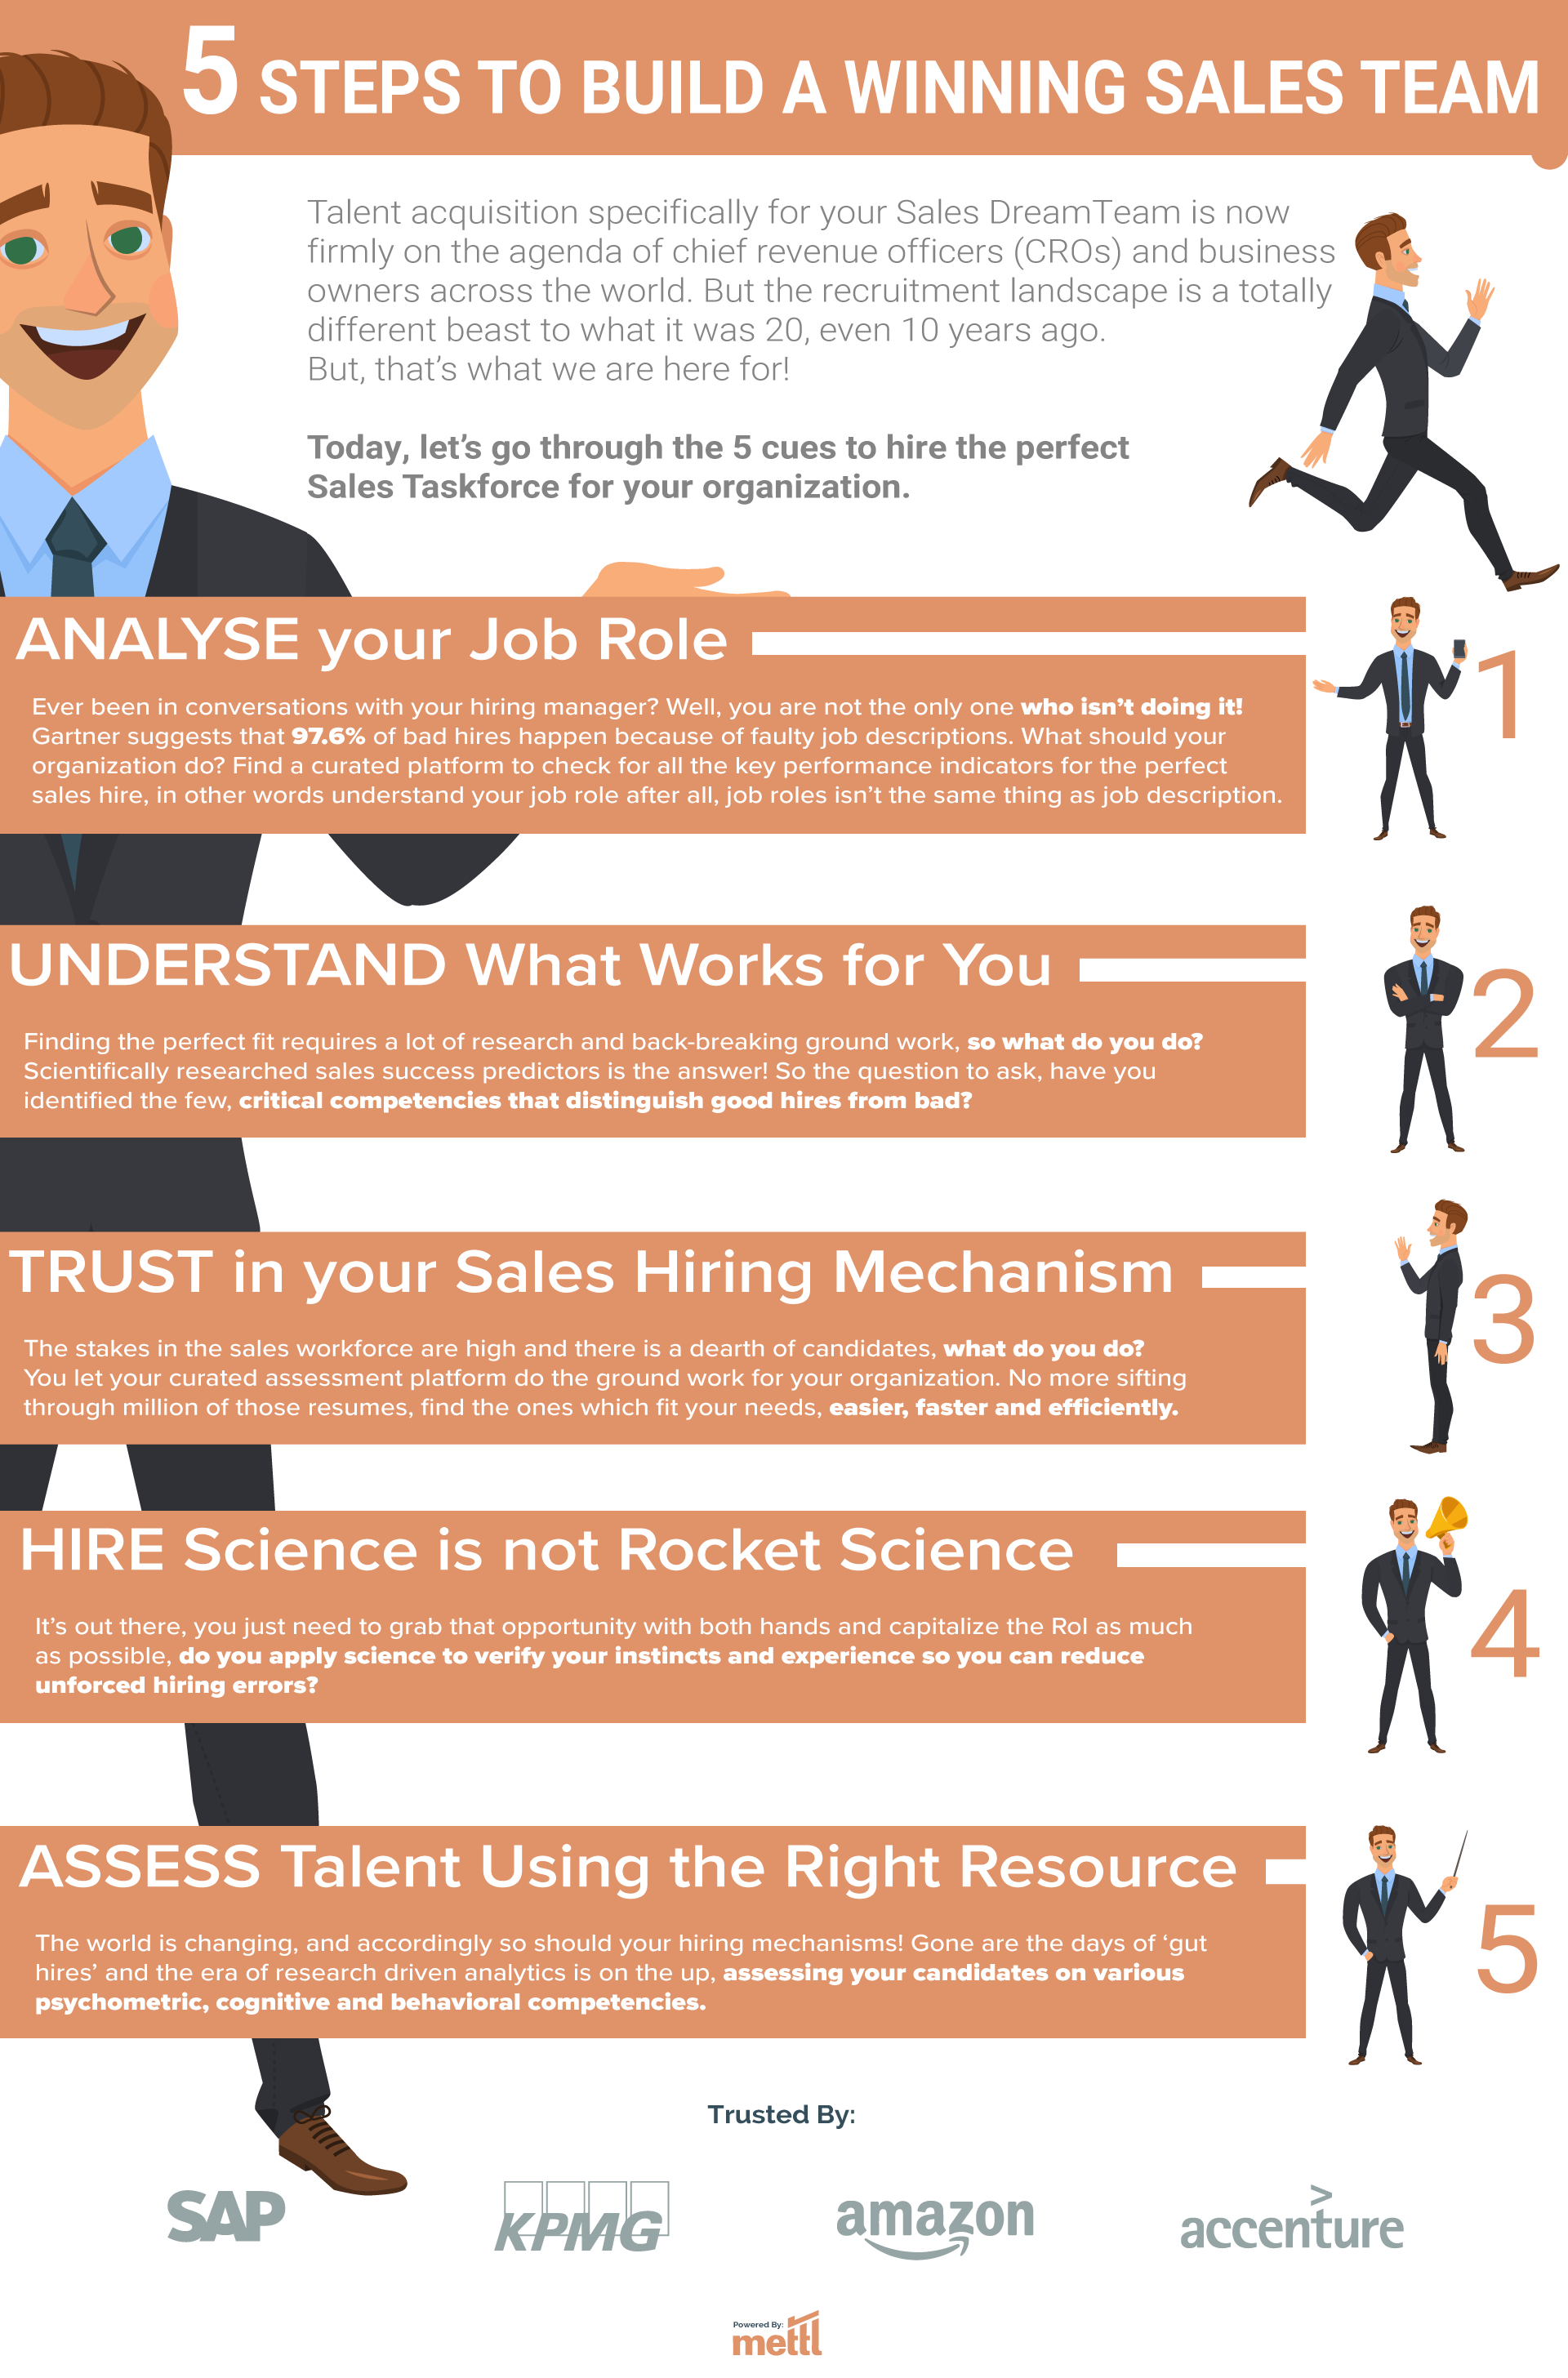 5 Steps to hire a Sales Team - Analyze, Understand, Trust, Hire, Assess - Sales Recruitment